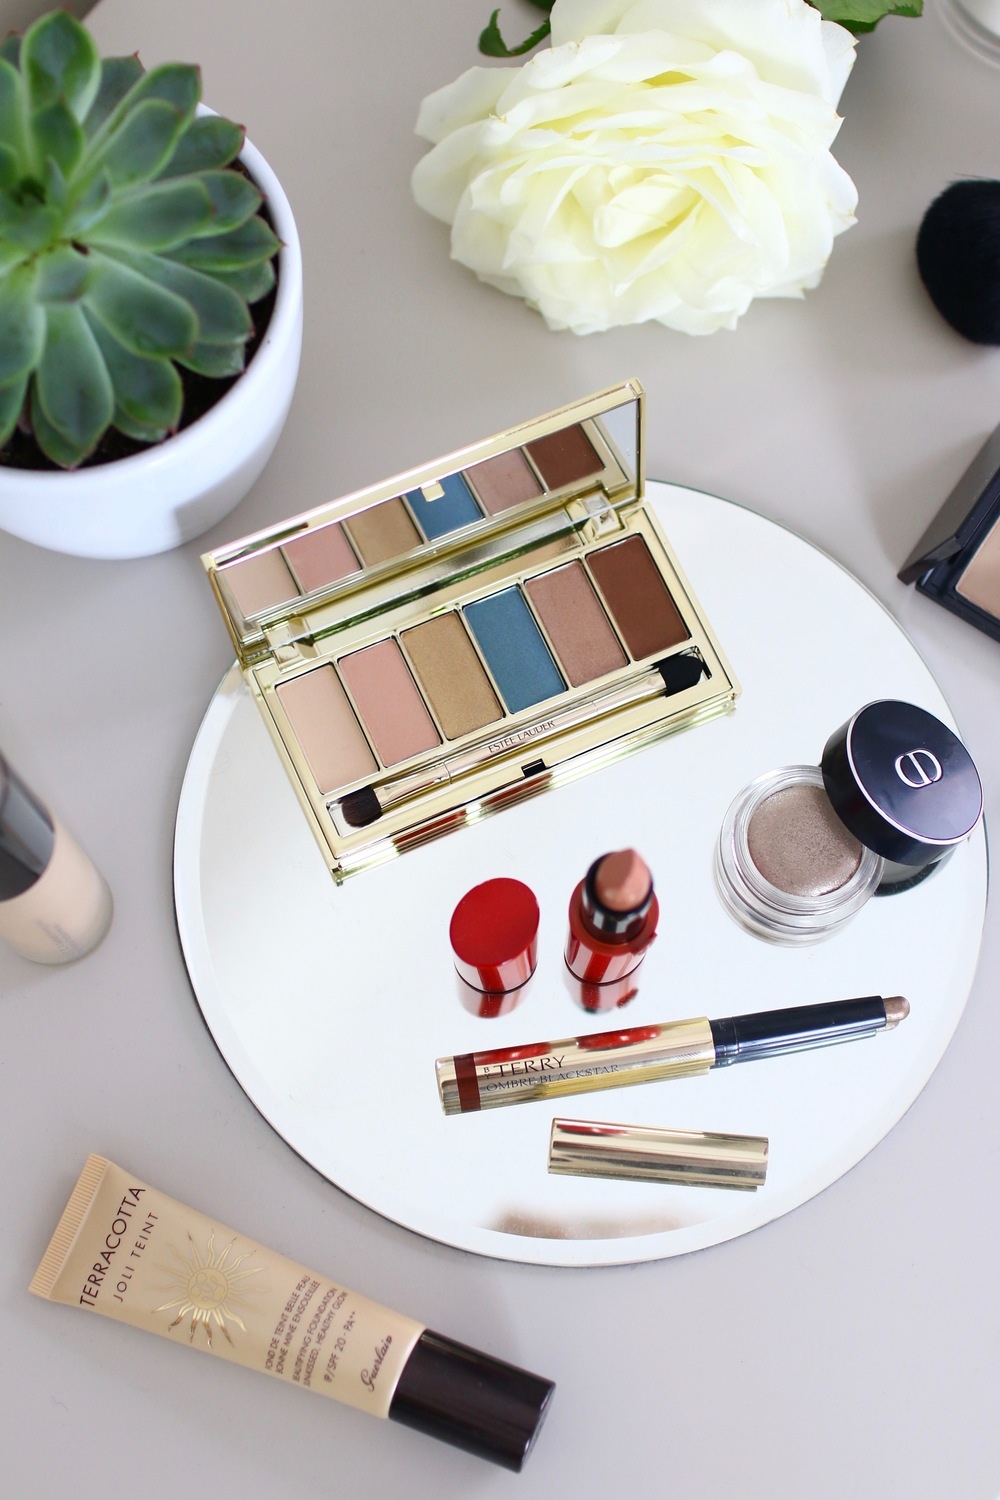 Round Mirrored Charger Estée Lauder Bronze Goddess Summer Glow EyeShadow Palette